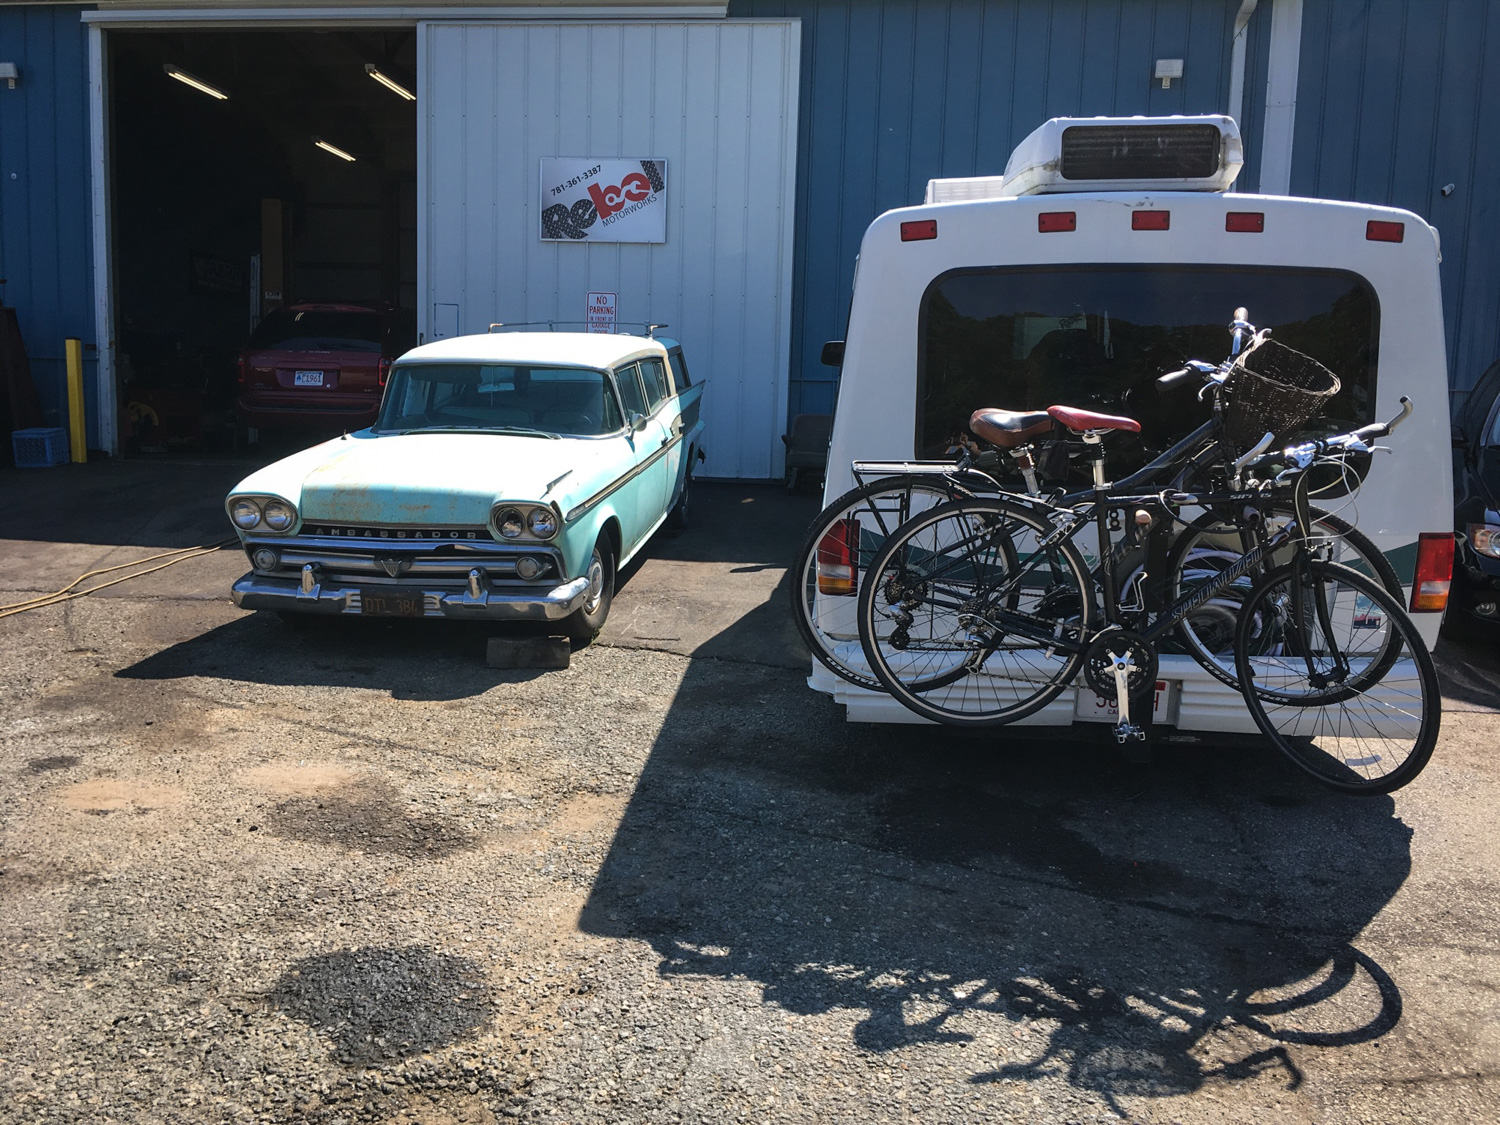 The Rialta in front of Rebel Motor Works in Plymouth, Massachusetts. That '59 AMC Ambassador wagon was pretty cool too.